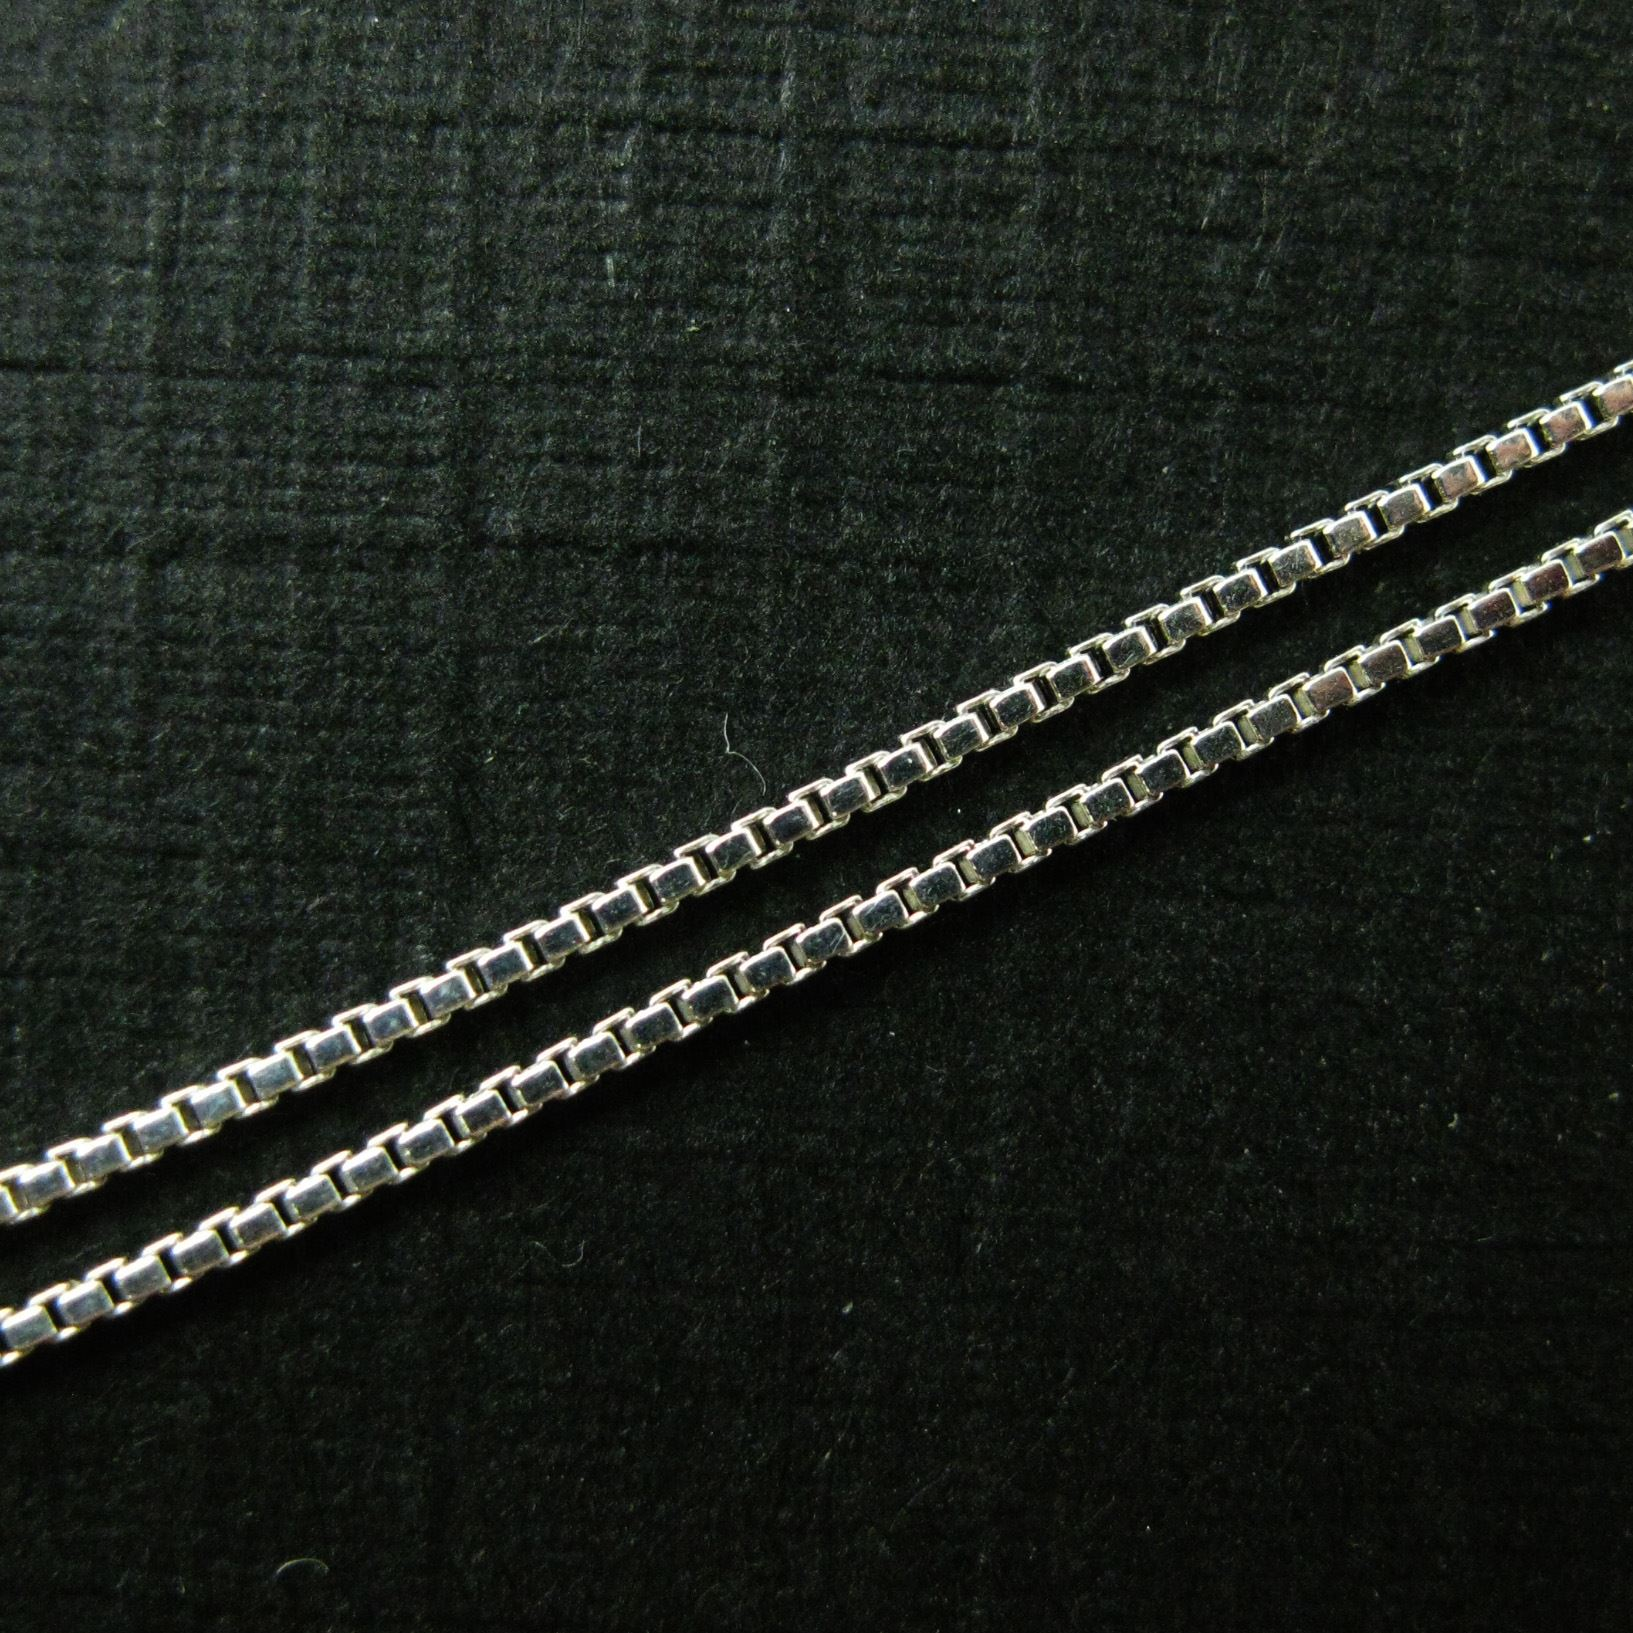 Sterling Silver Ear Thread, Long Dangle Threader Silver Earrings- 80mm long (4 pcs, 2 pairs)